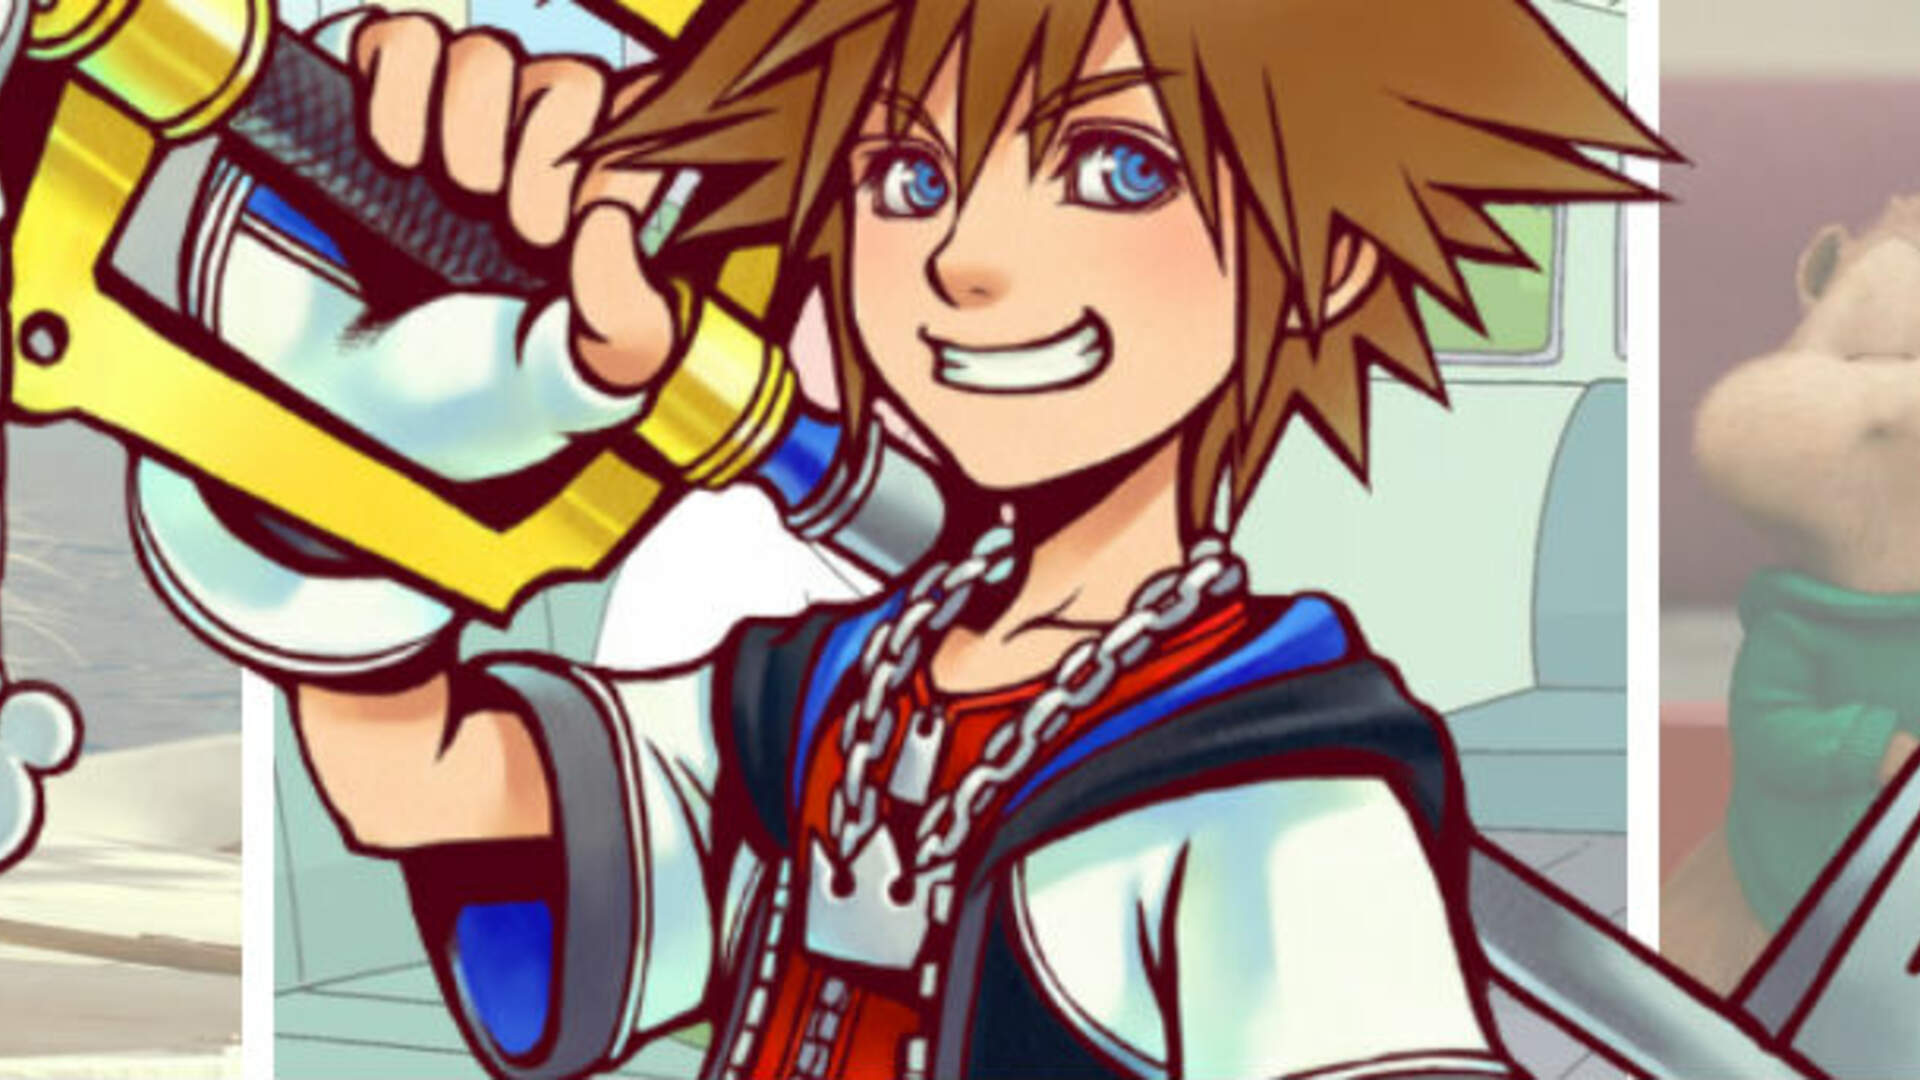 8 Horrific Kingdom Hearts Crossover Scenarios That Are Now Possible Thanks to the Disney-Fox Deal